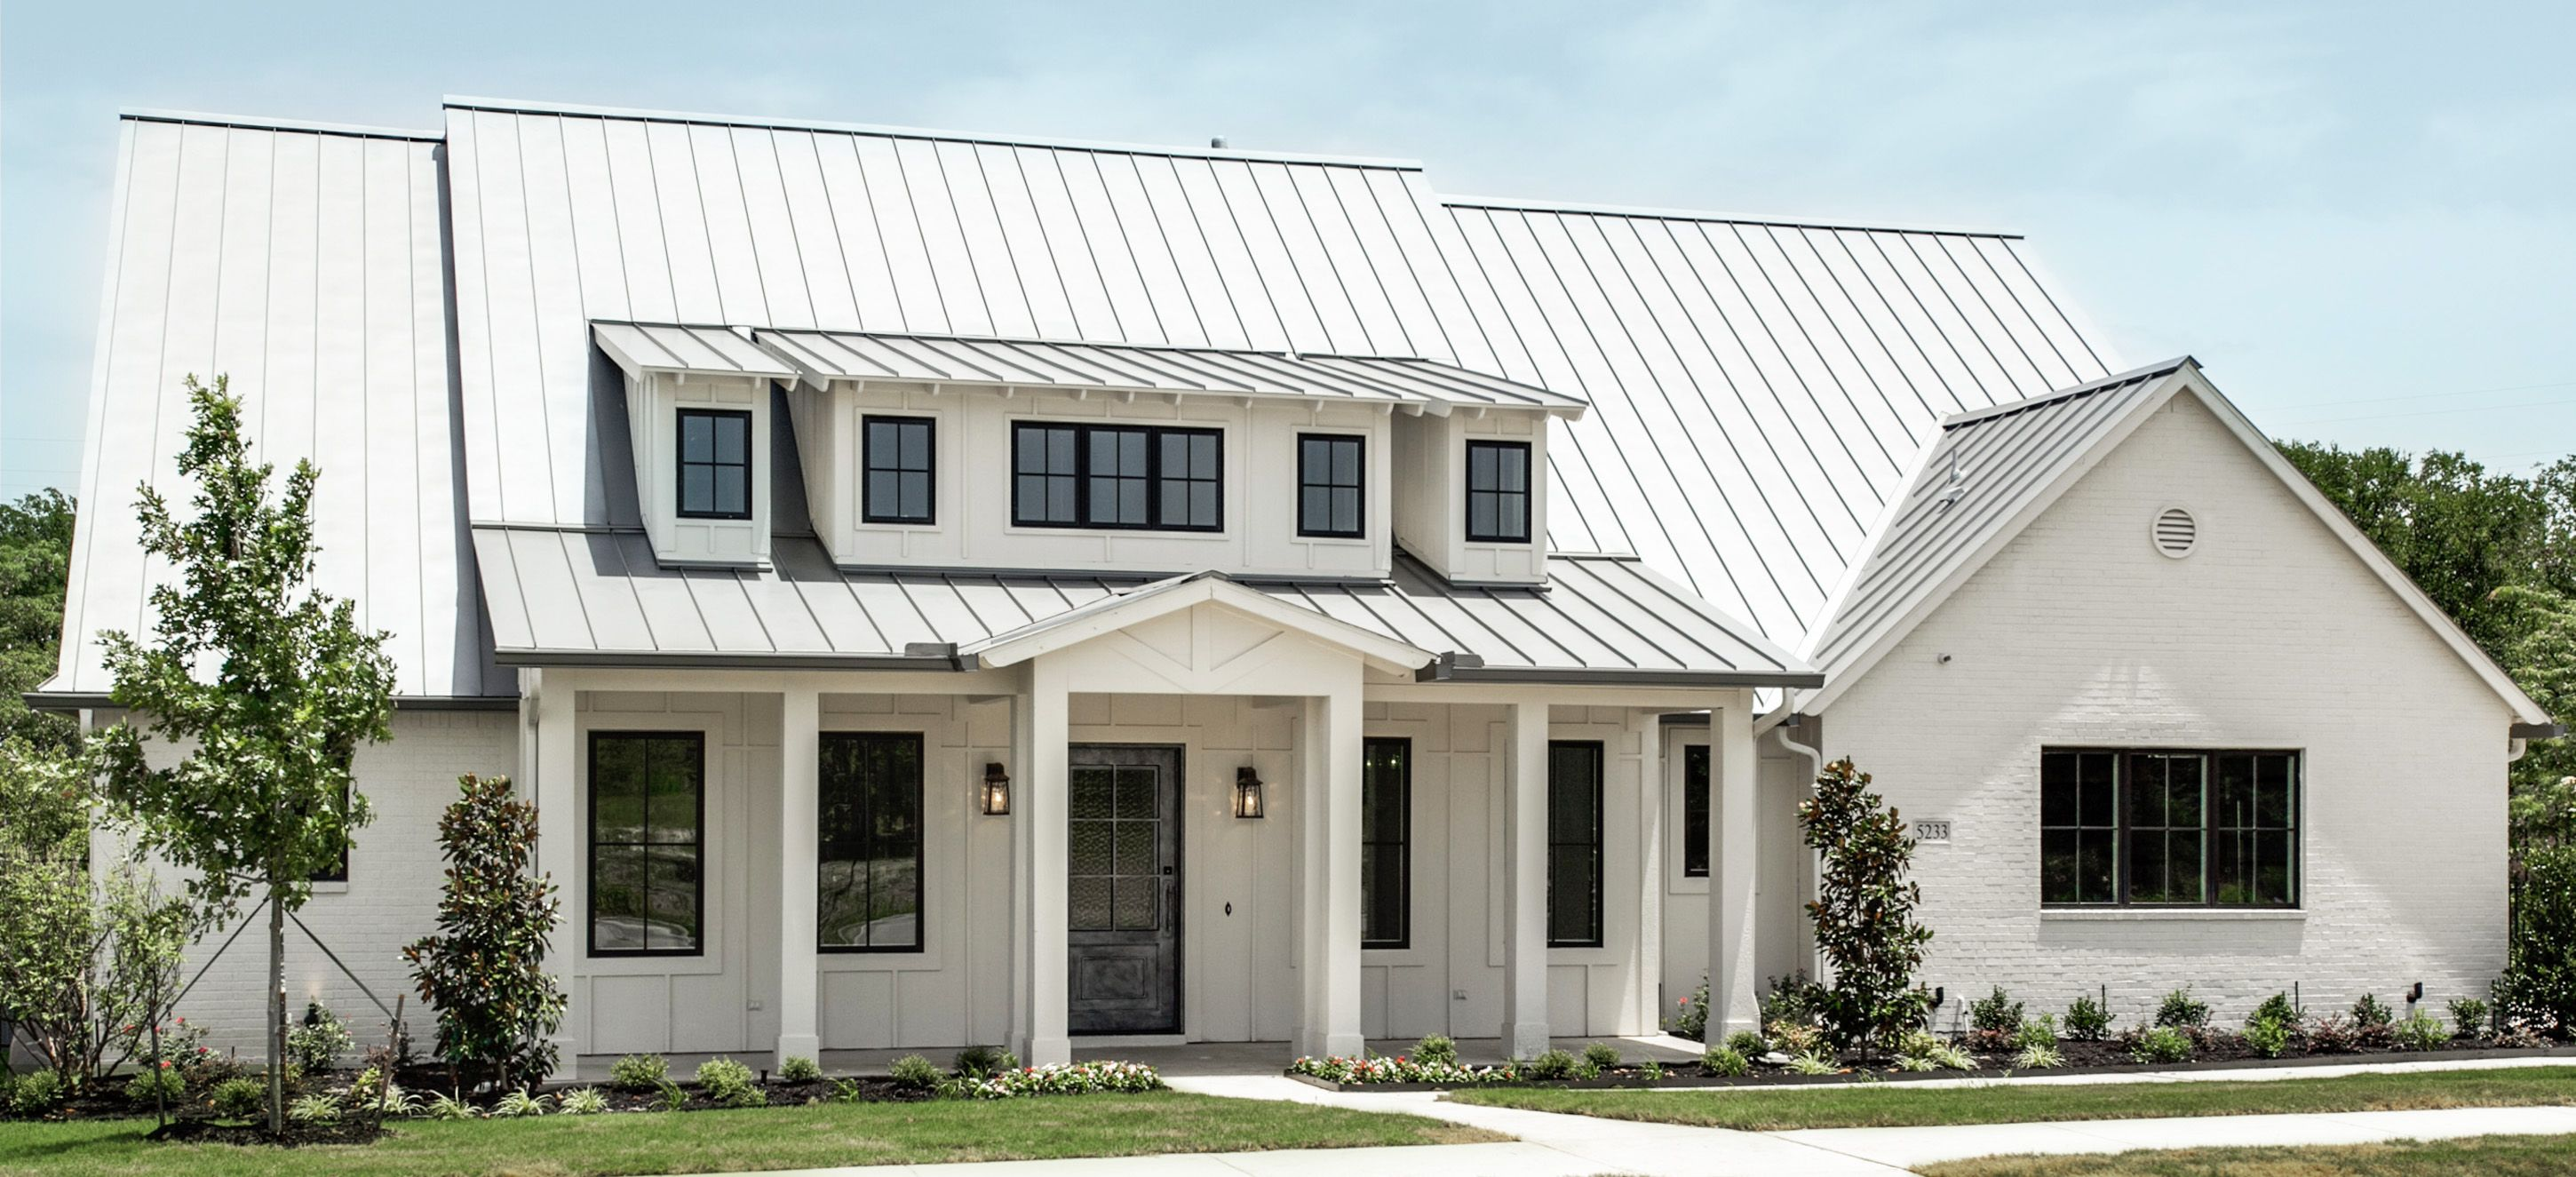 Farmhouse Exterior Colors With Metal Roof Modern Farm House La Cantera Metal Roof White Painted